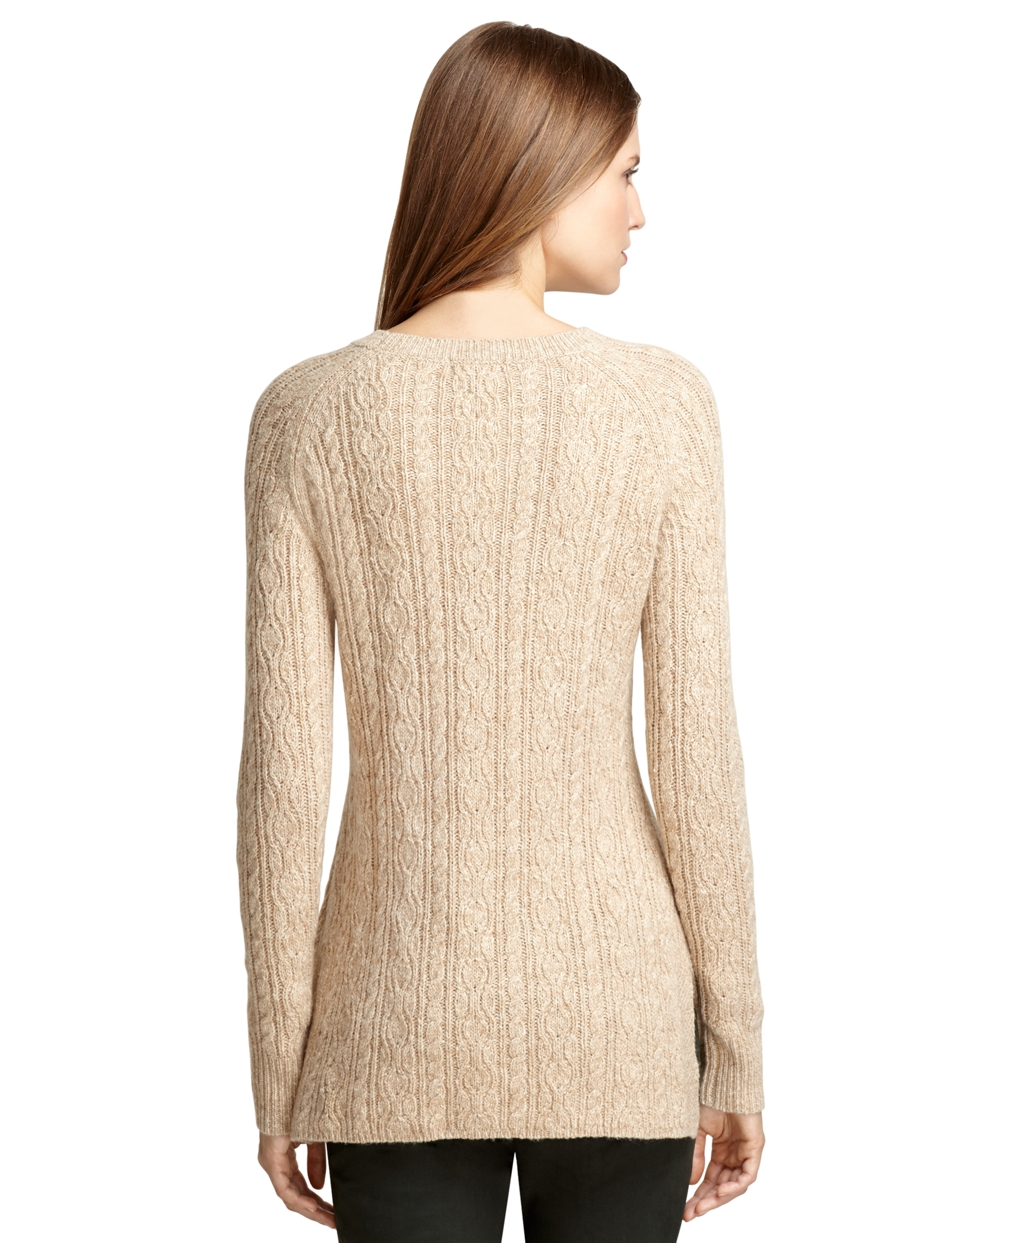 Brooks brothers Camel Hair Cable Knit Tunic Sweater in Natural | Lyst